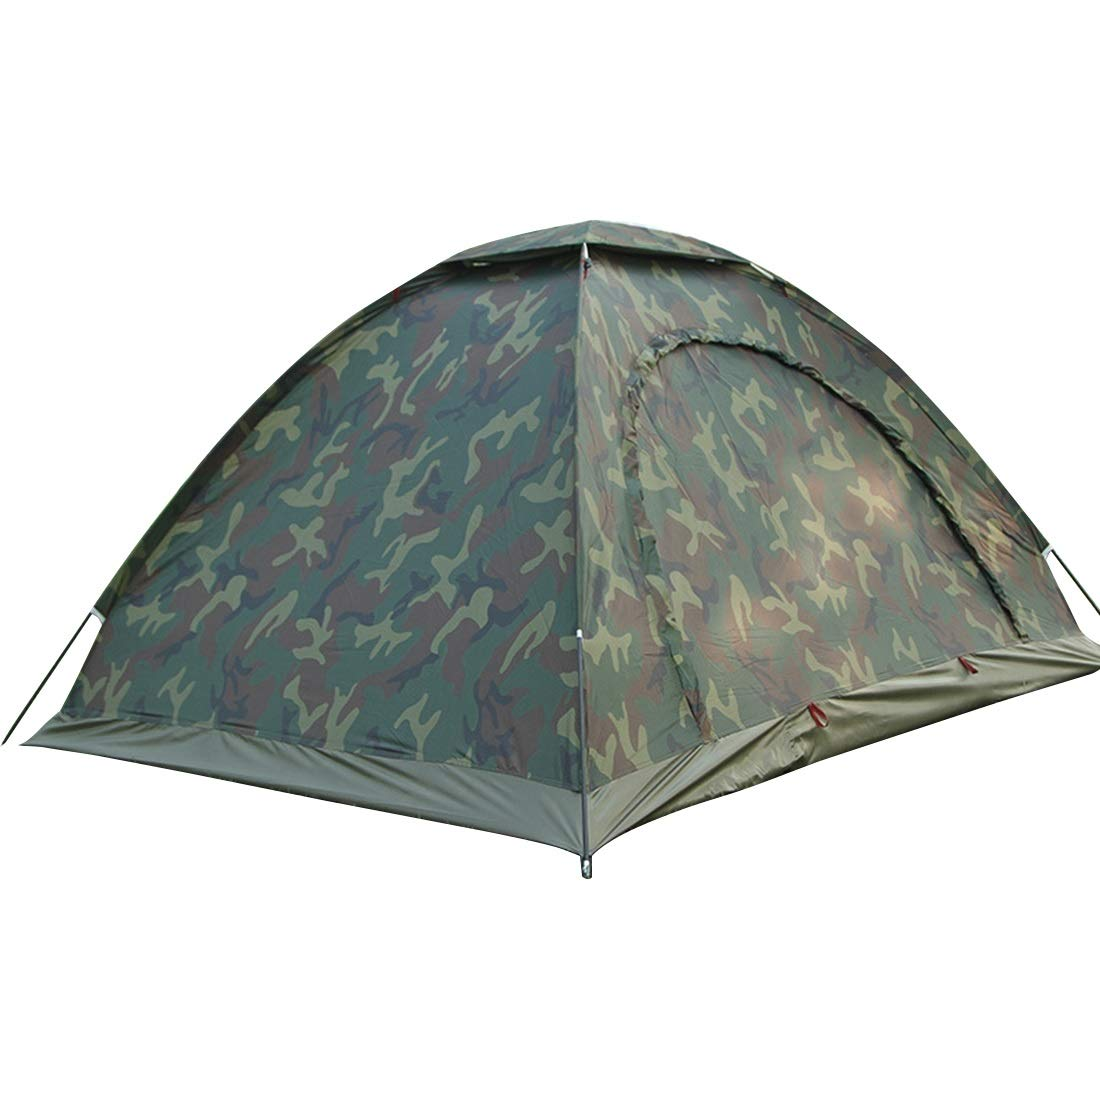 WEATLY 1 Person & 2 Person & 3 Personen Camouflage Zelt für Outdoor Camping